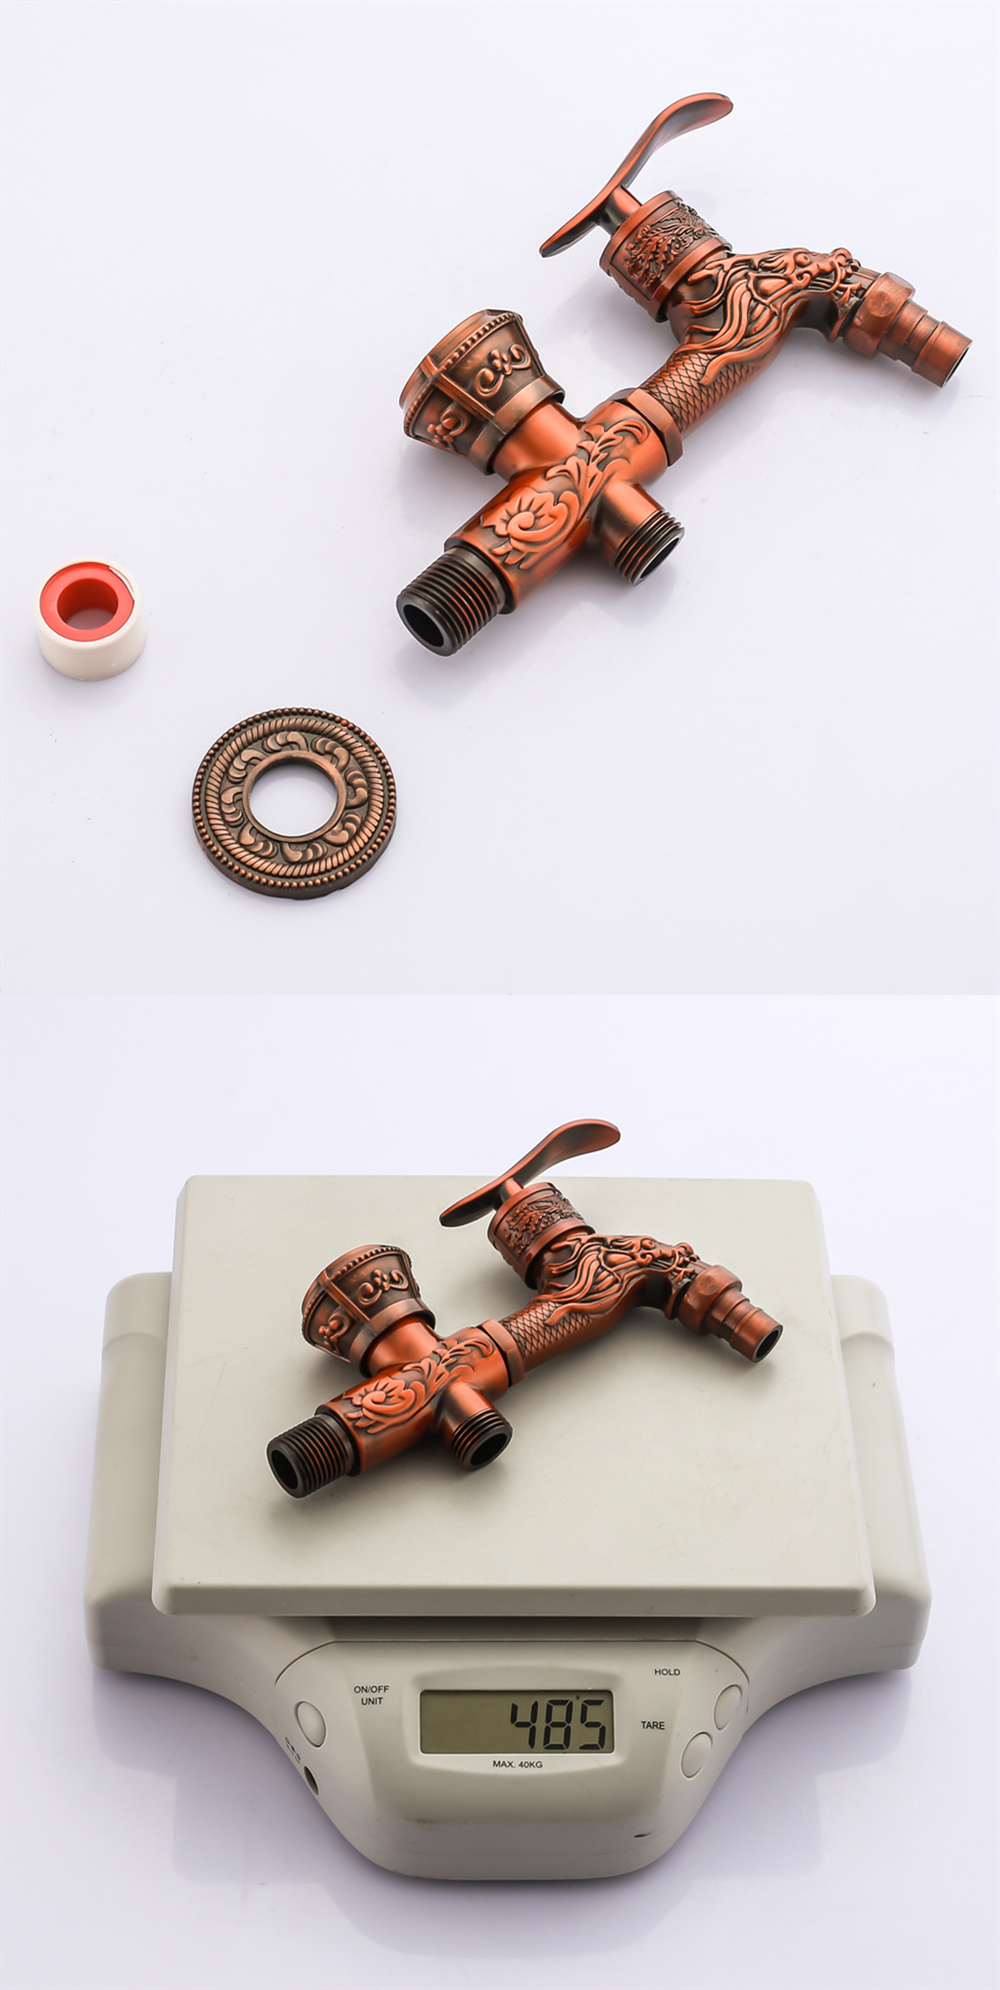 Doodii Carved Wall Mount Zinc Alloy Antique Bibcock Garden Wash Basin Faucet Decorative Outdoor Garden Mop Taps Torneira parede11